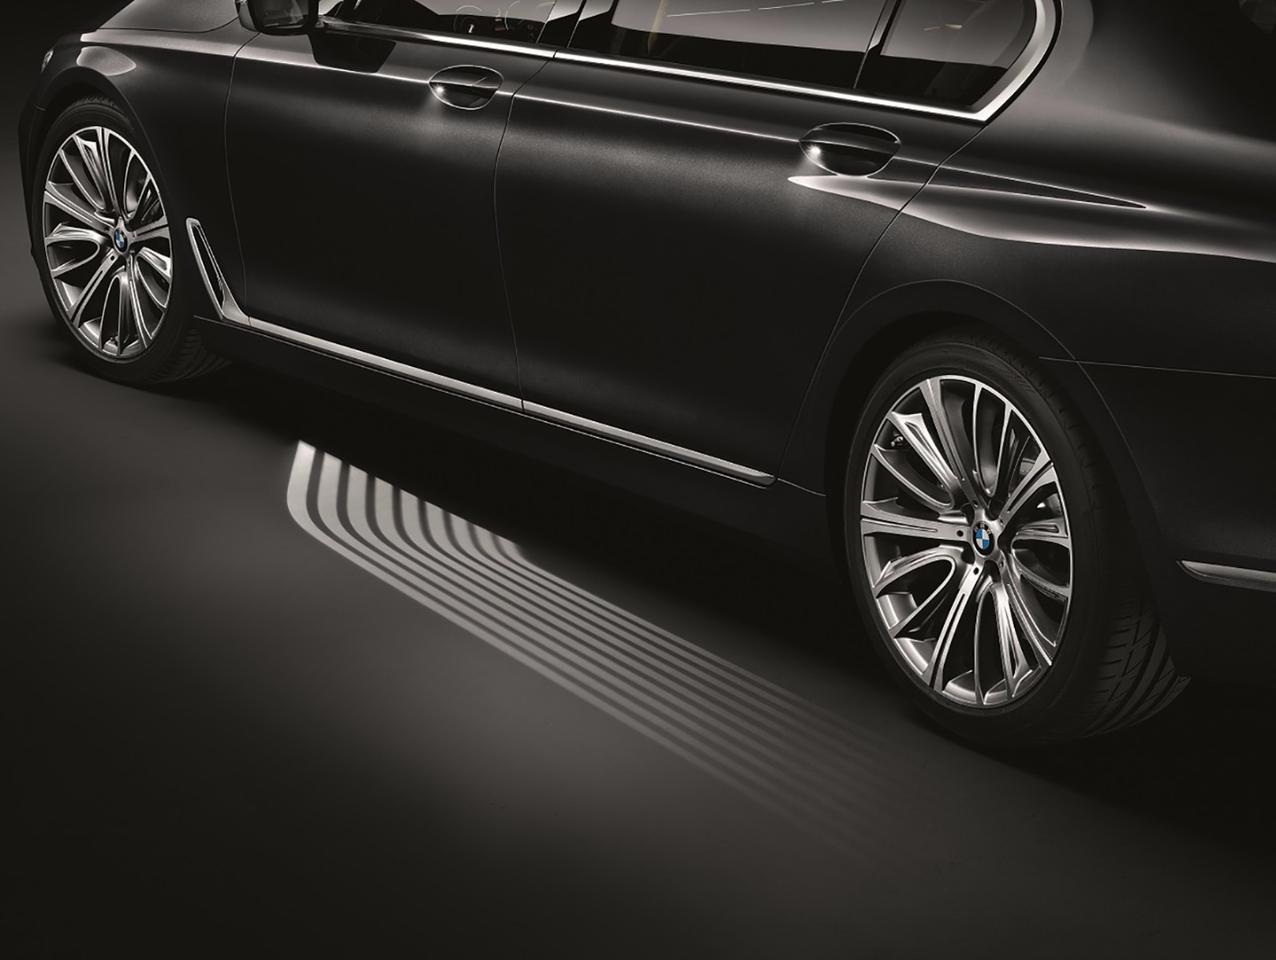 Microlenses project light onto the entry area of the new BMW 7 Series